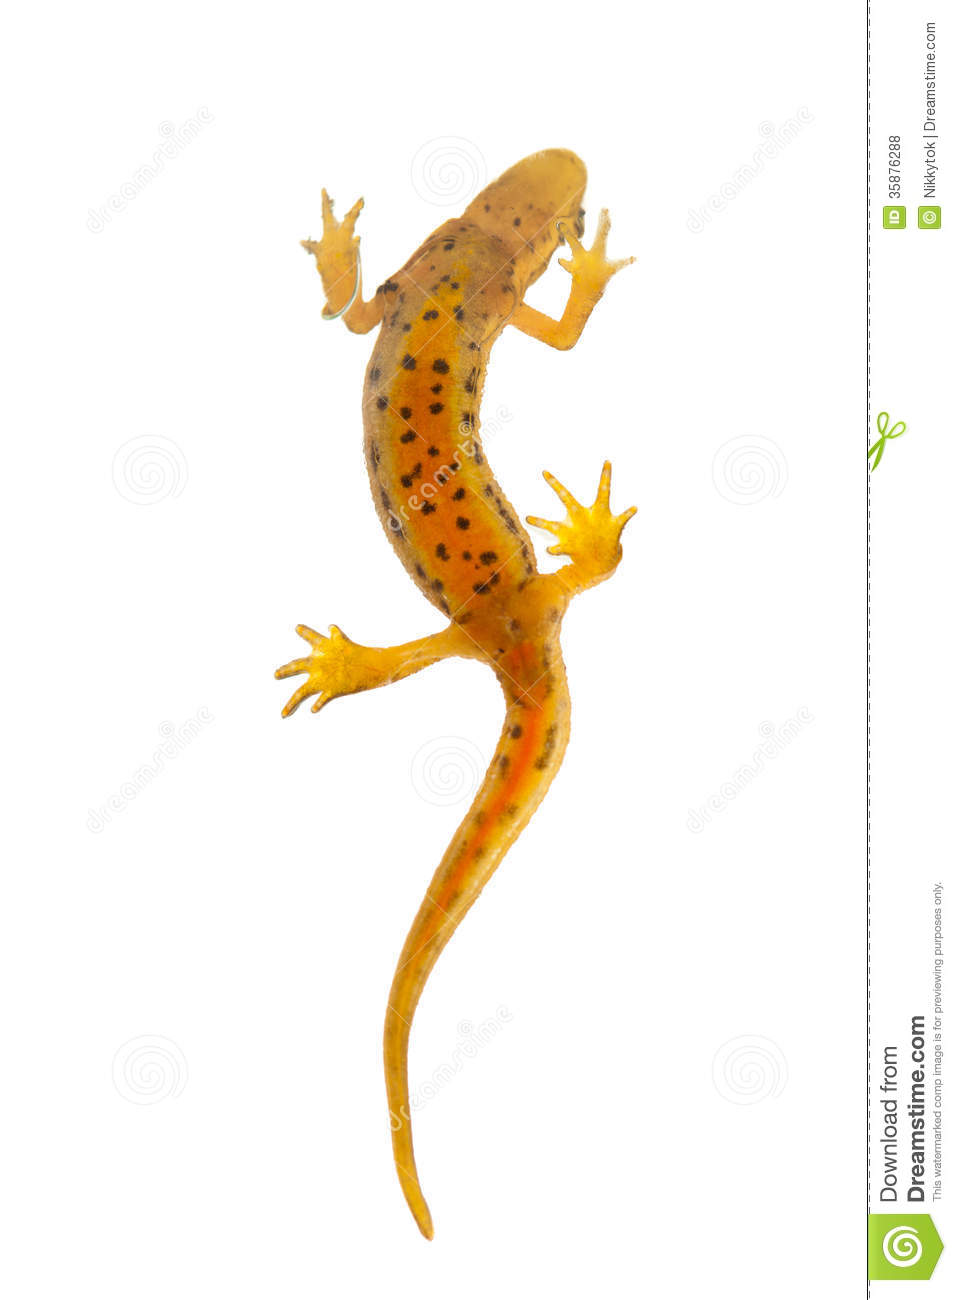 Eastern Newt  clipart #5, Download drawings